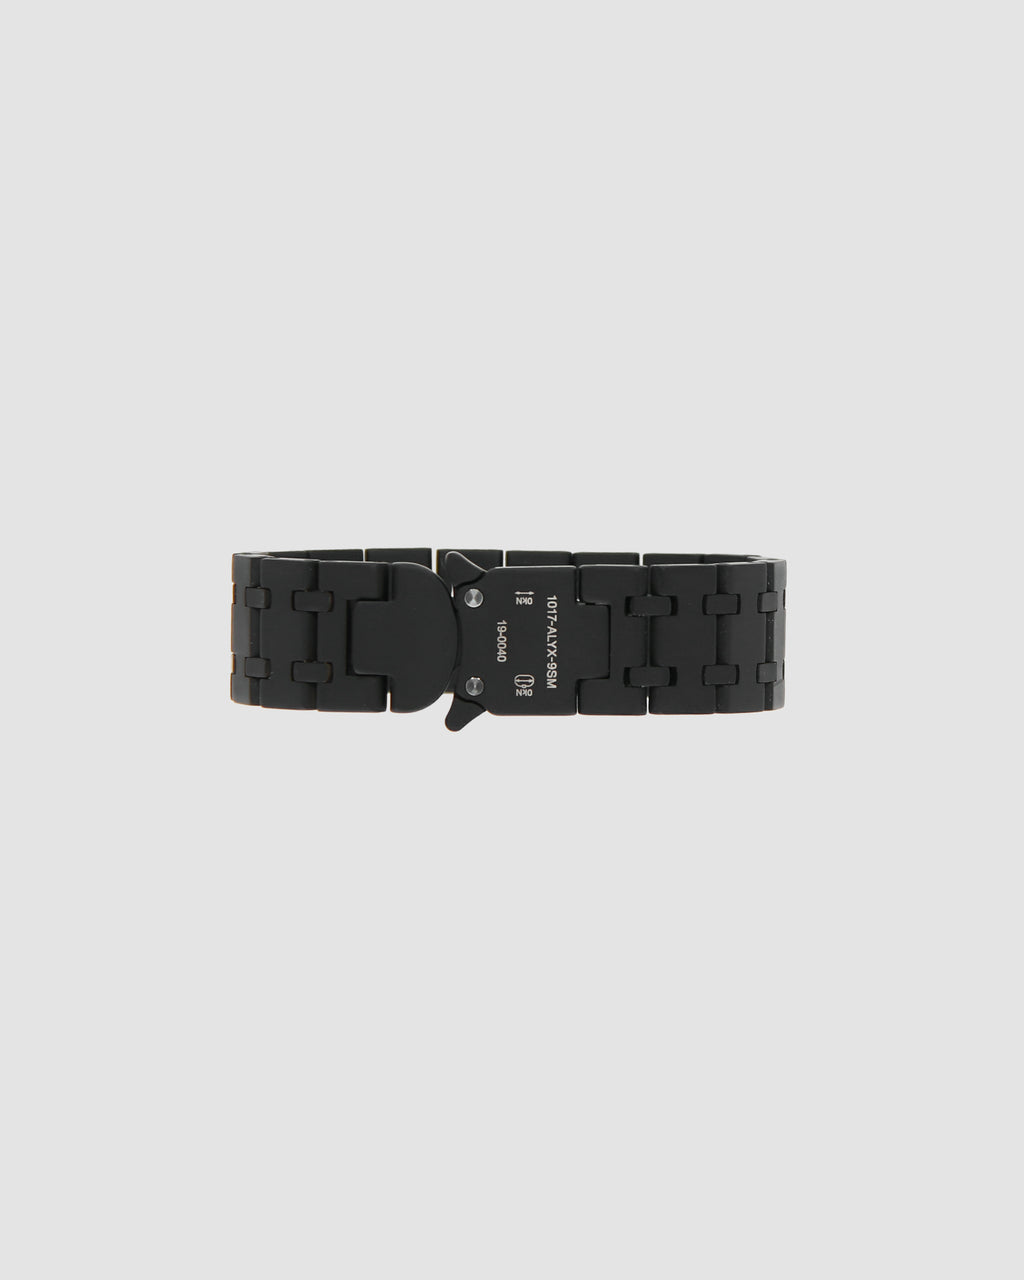 1017 ALYX 9SM | ROYAL OAK BRACELET | Jewellery | Accessories, BLACK, Google Shopping, Jewellery, jewelry, Man, S20, S20EXSH, UNISEX, Woman